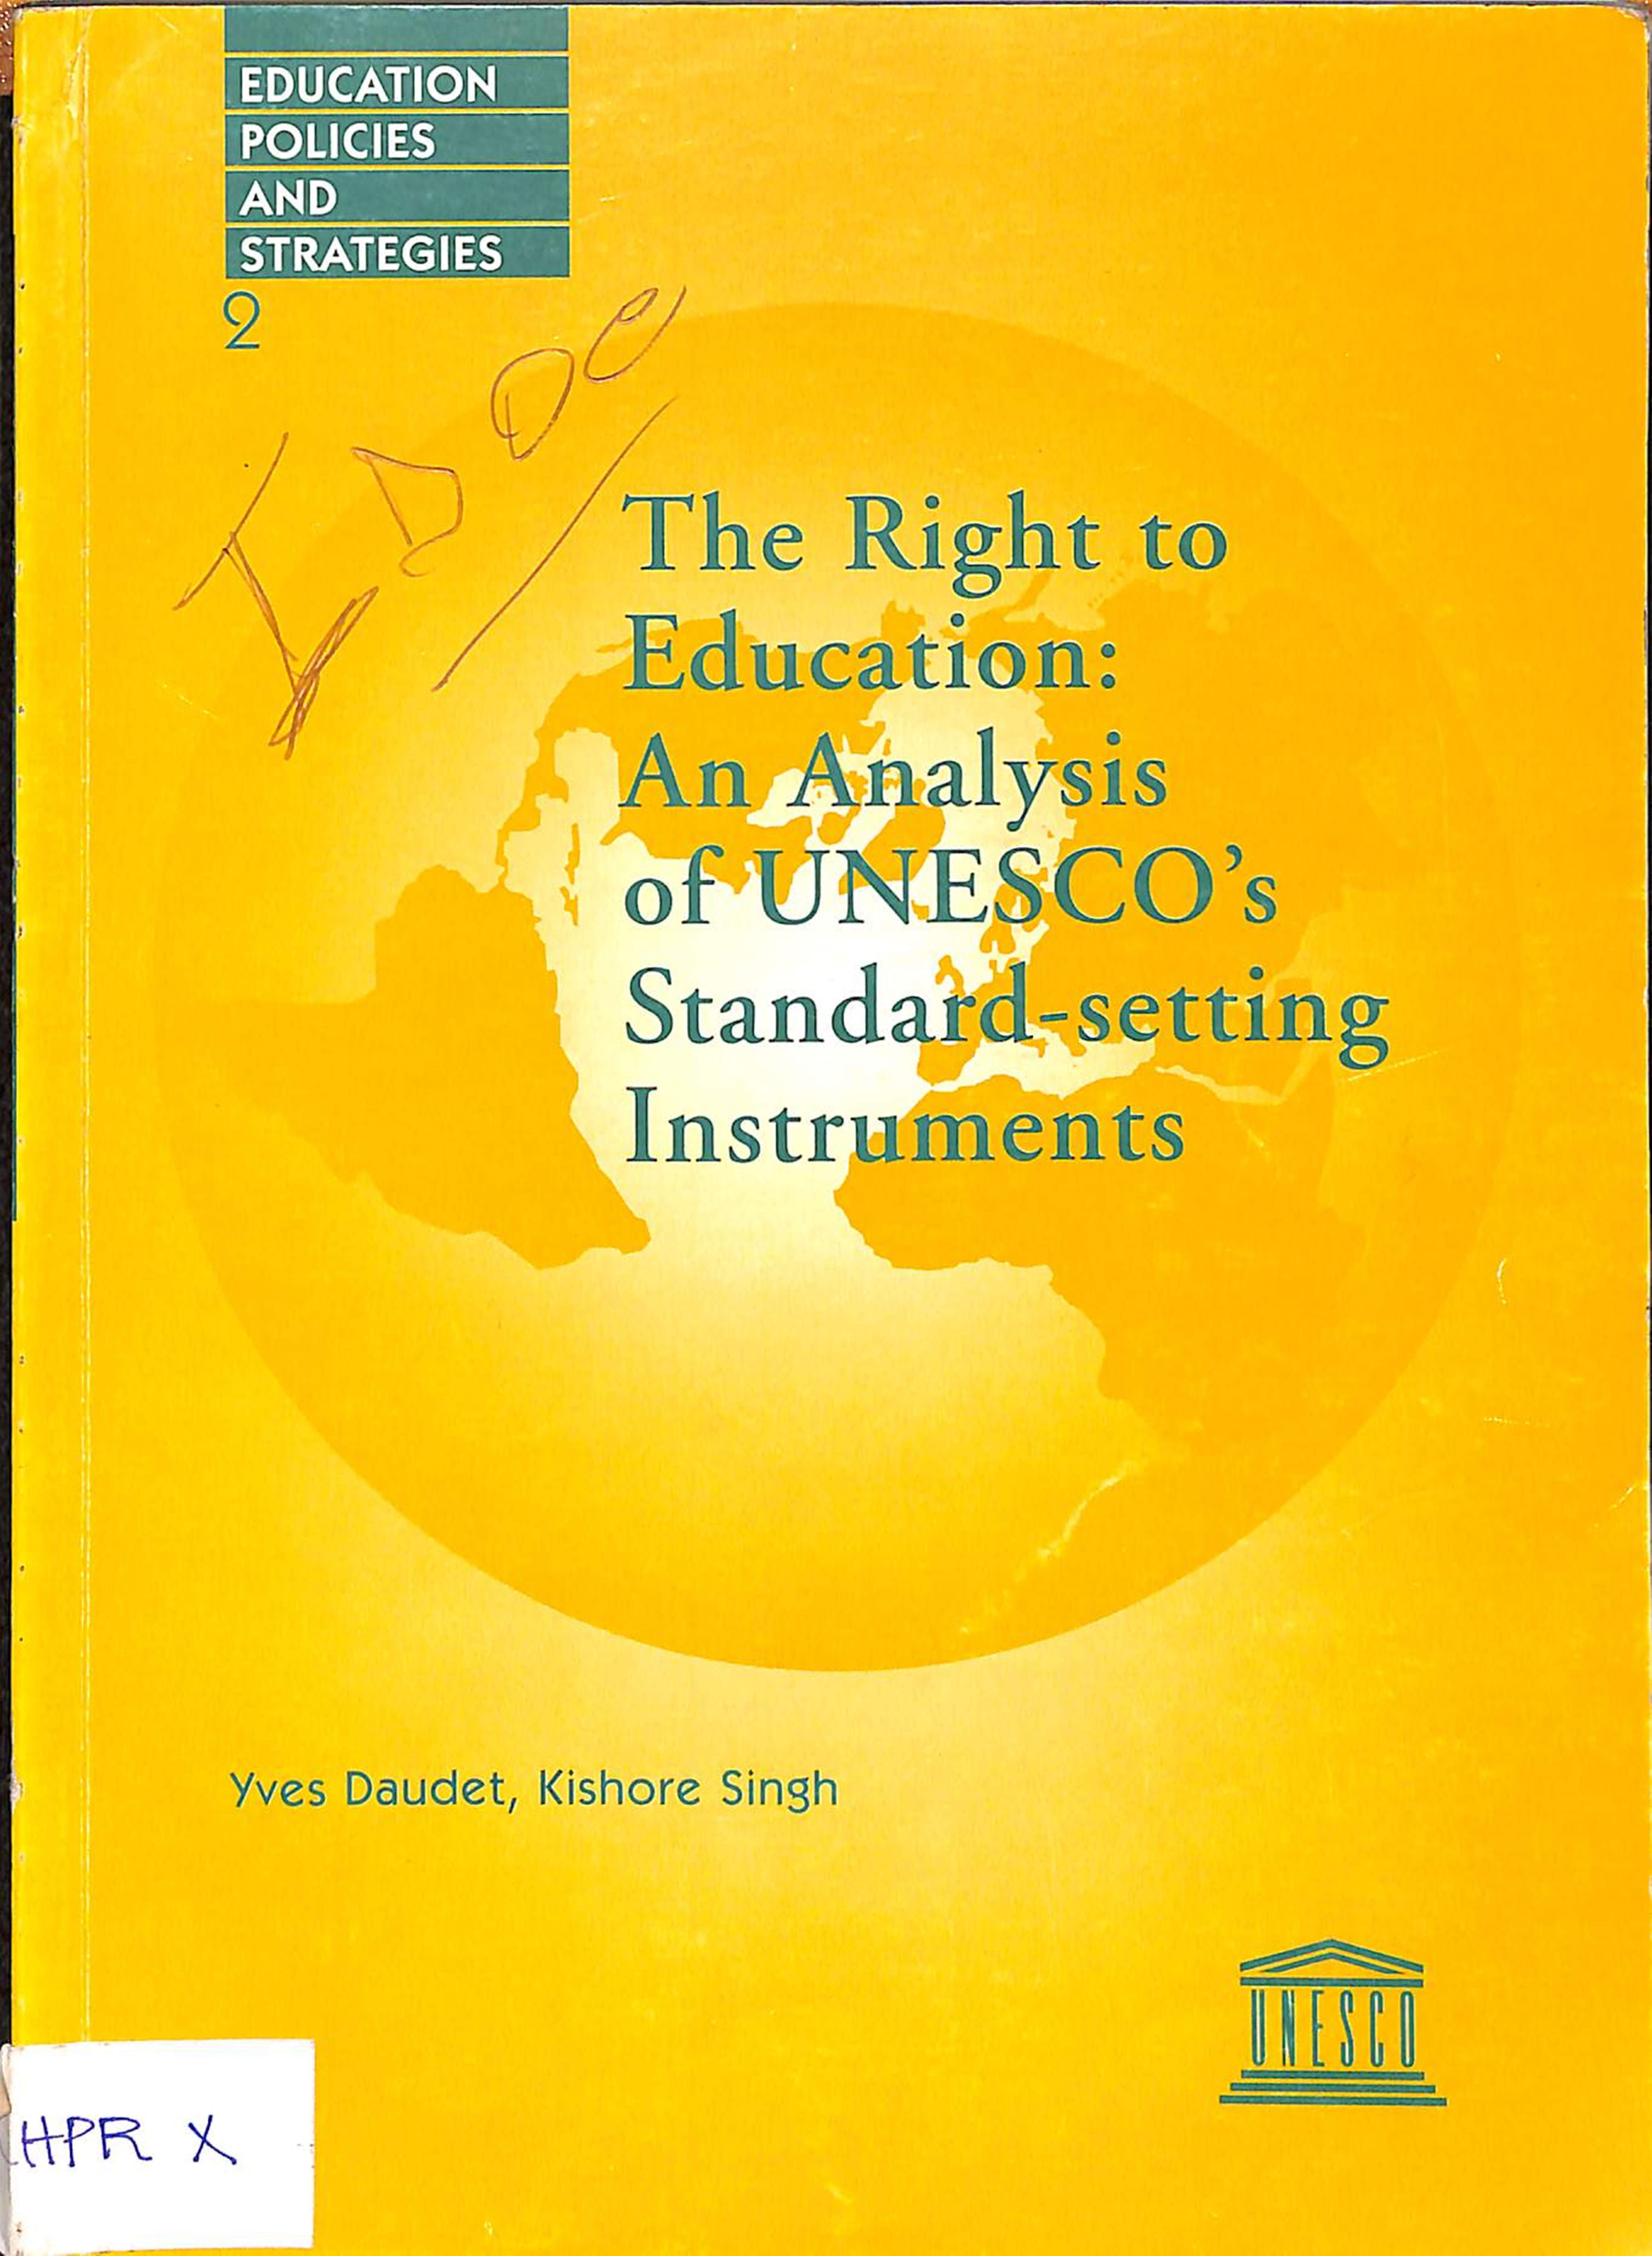 The right to education: an analysis of Unesco's standard-setting intruments